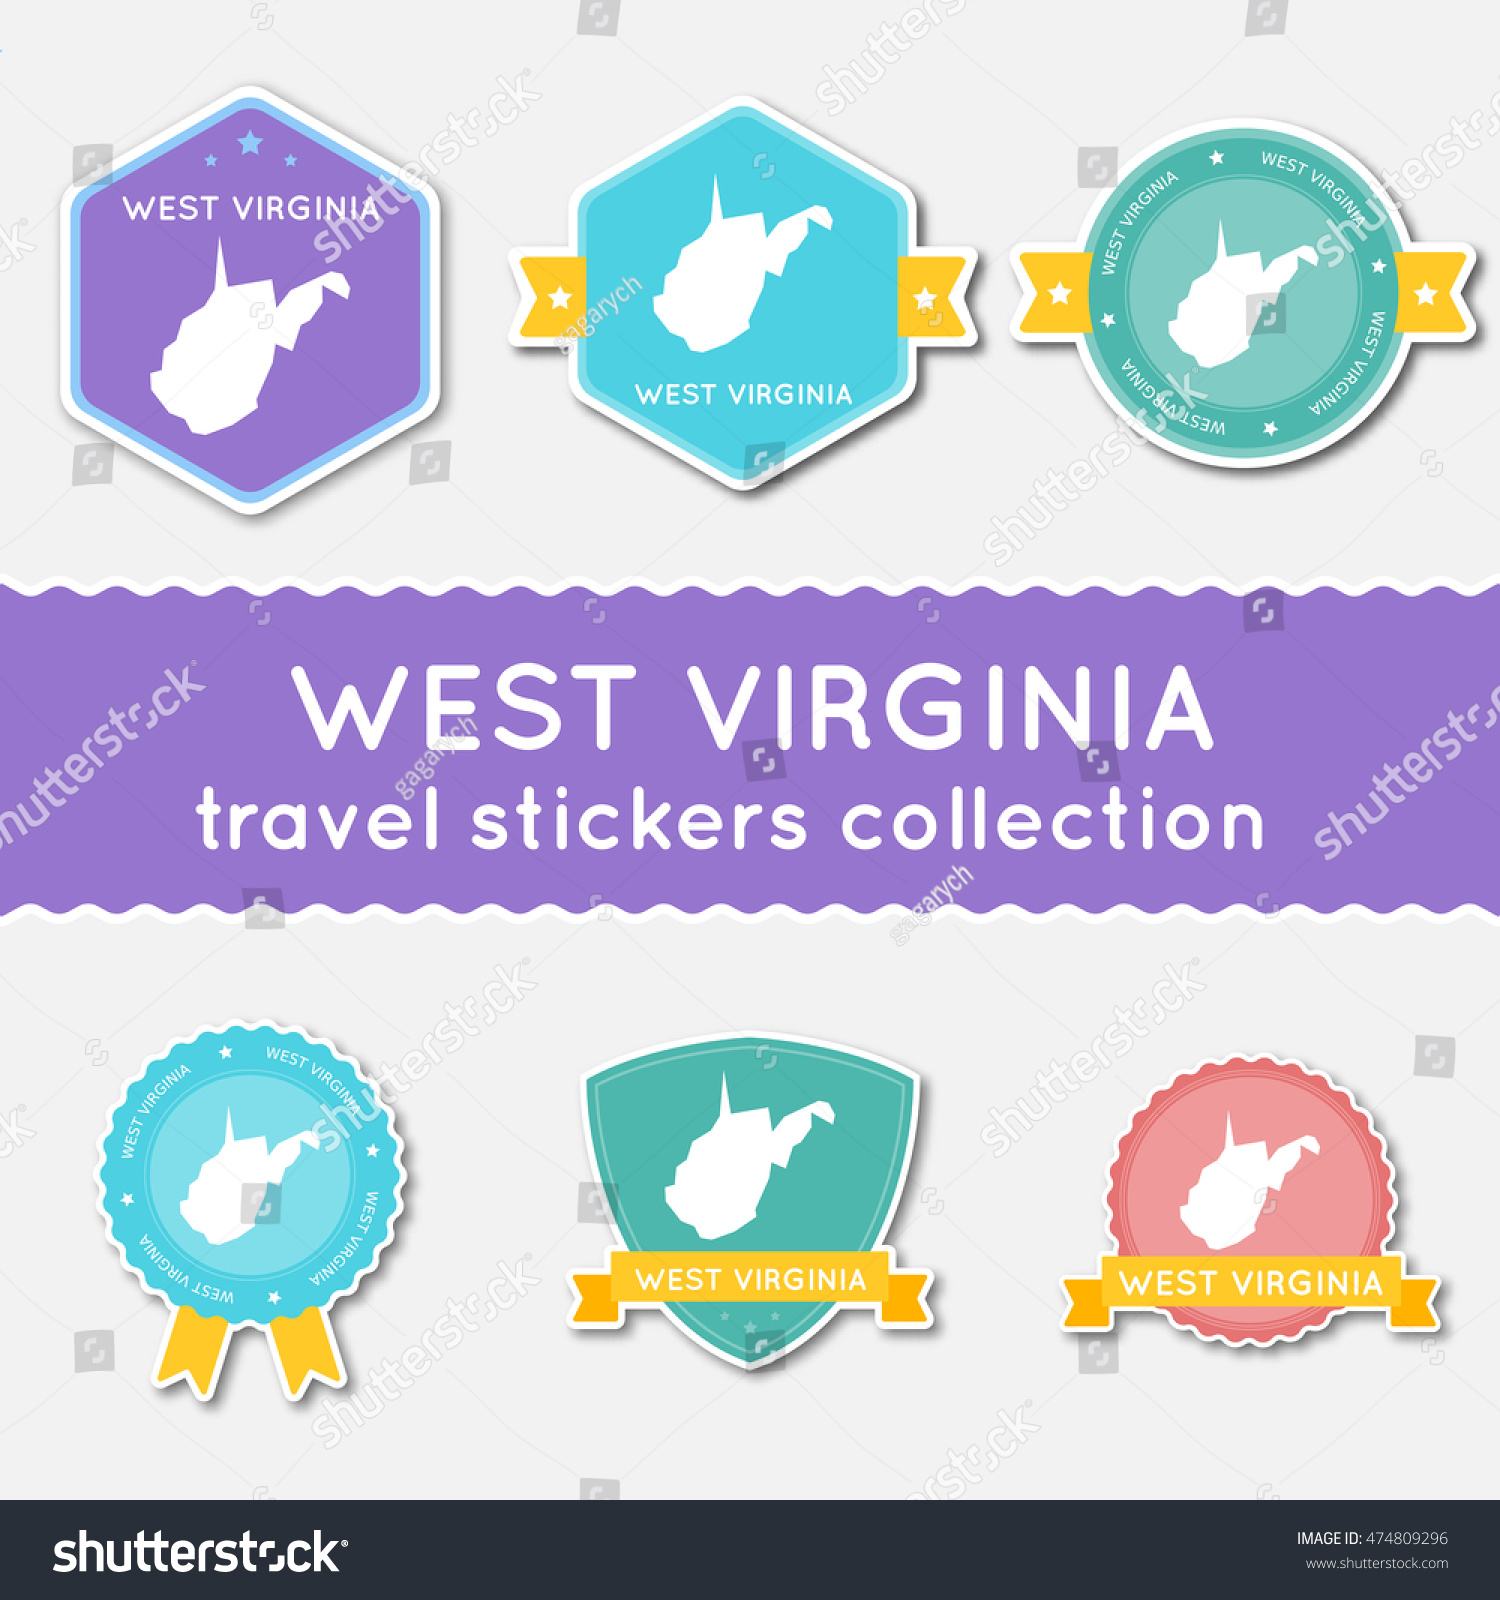 West Virginia Travel Stickers Collection Big Set Of Stickers With – Virginia Travel Map